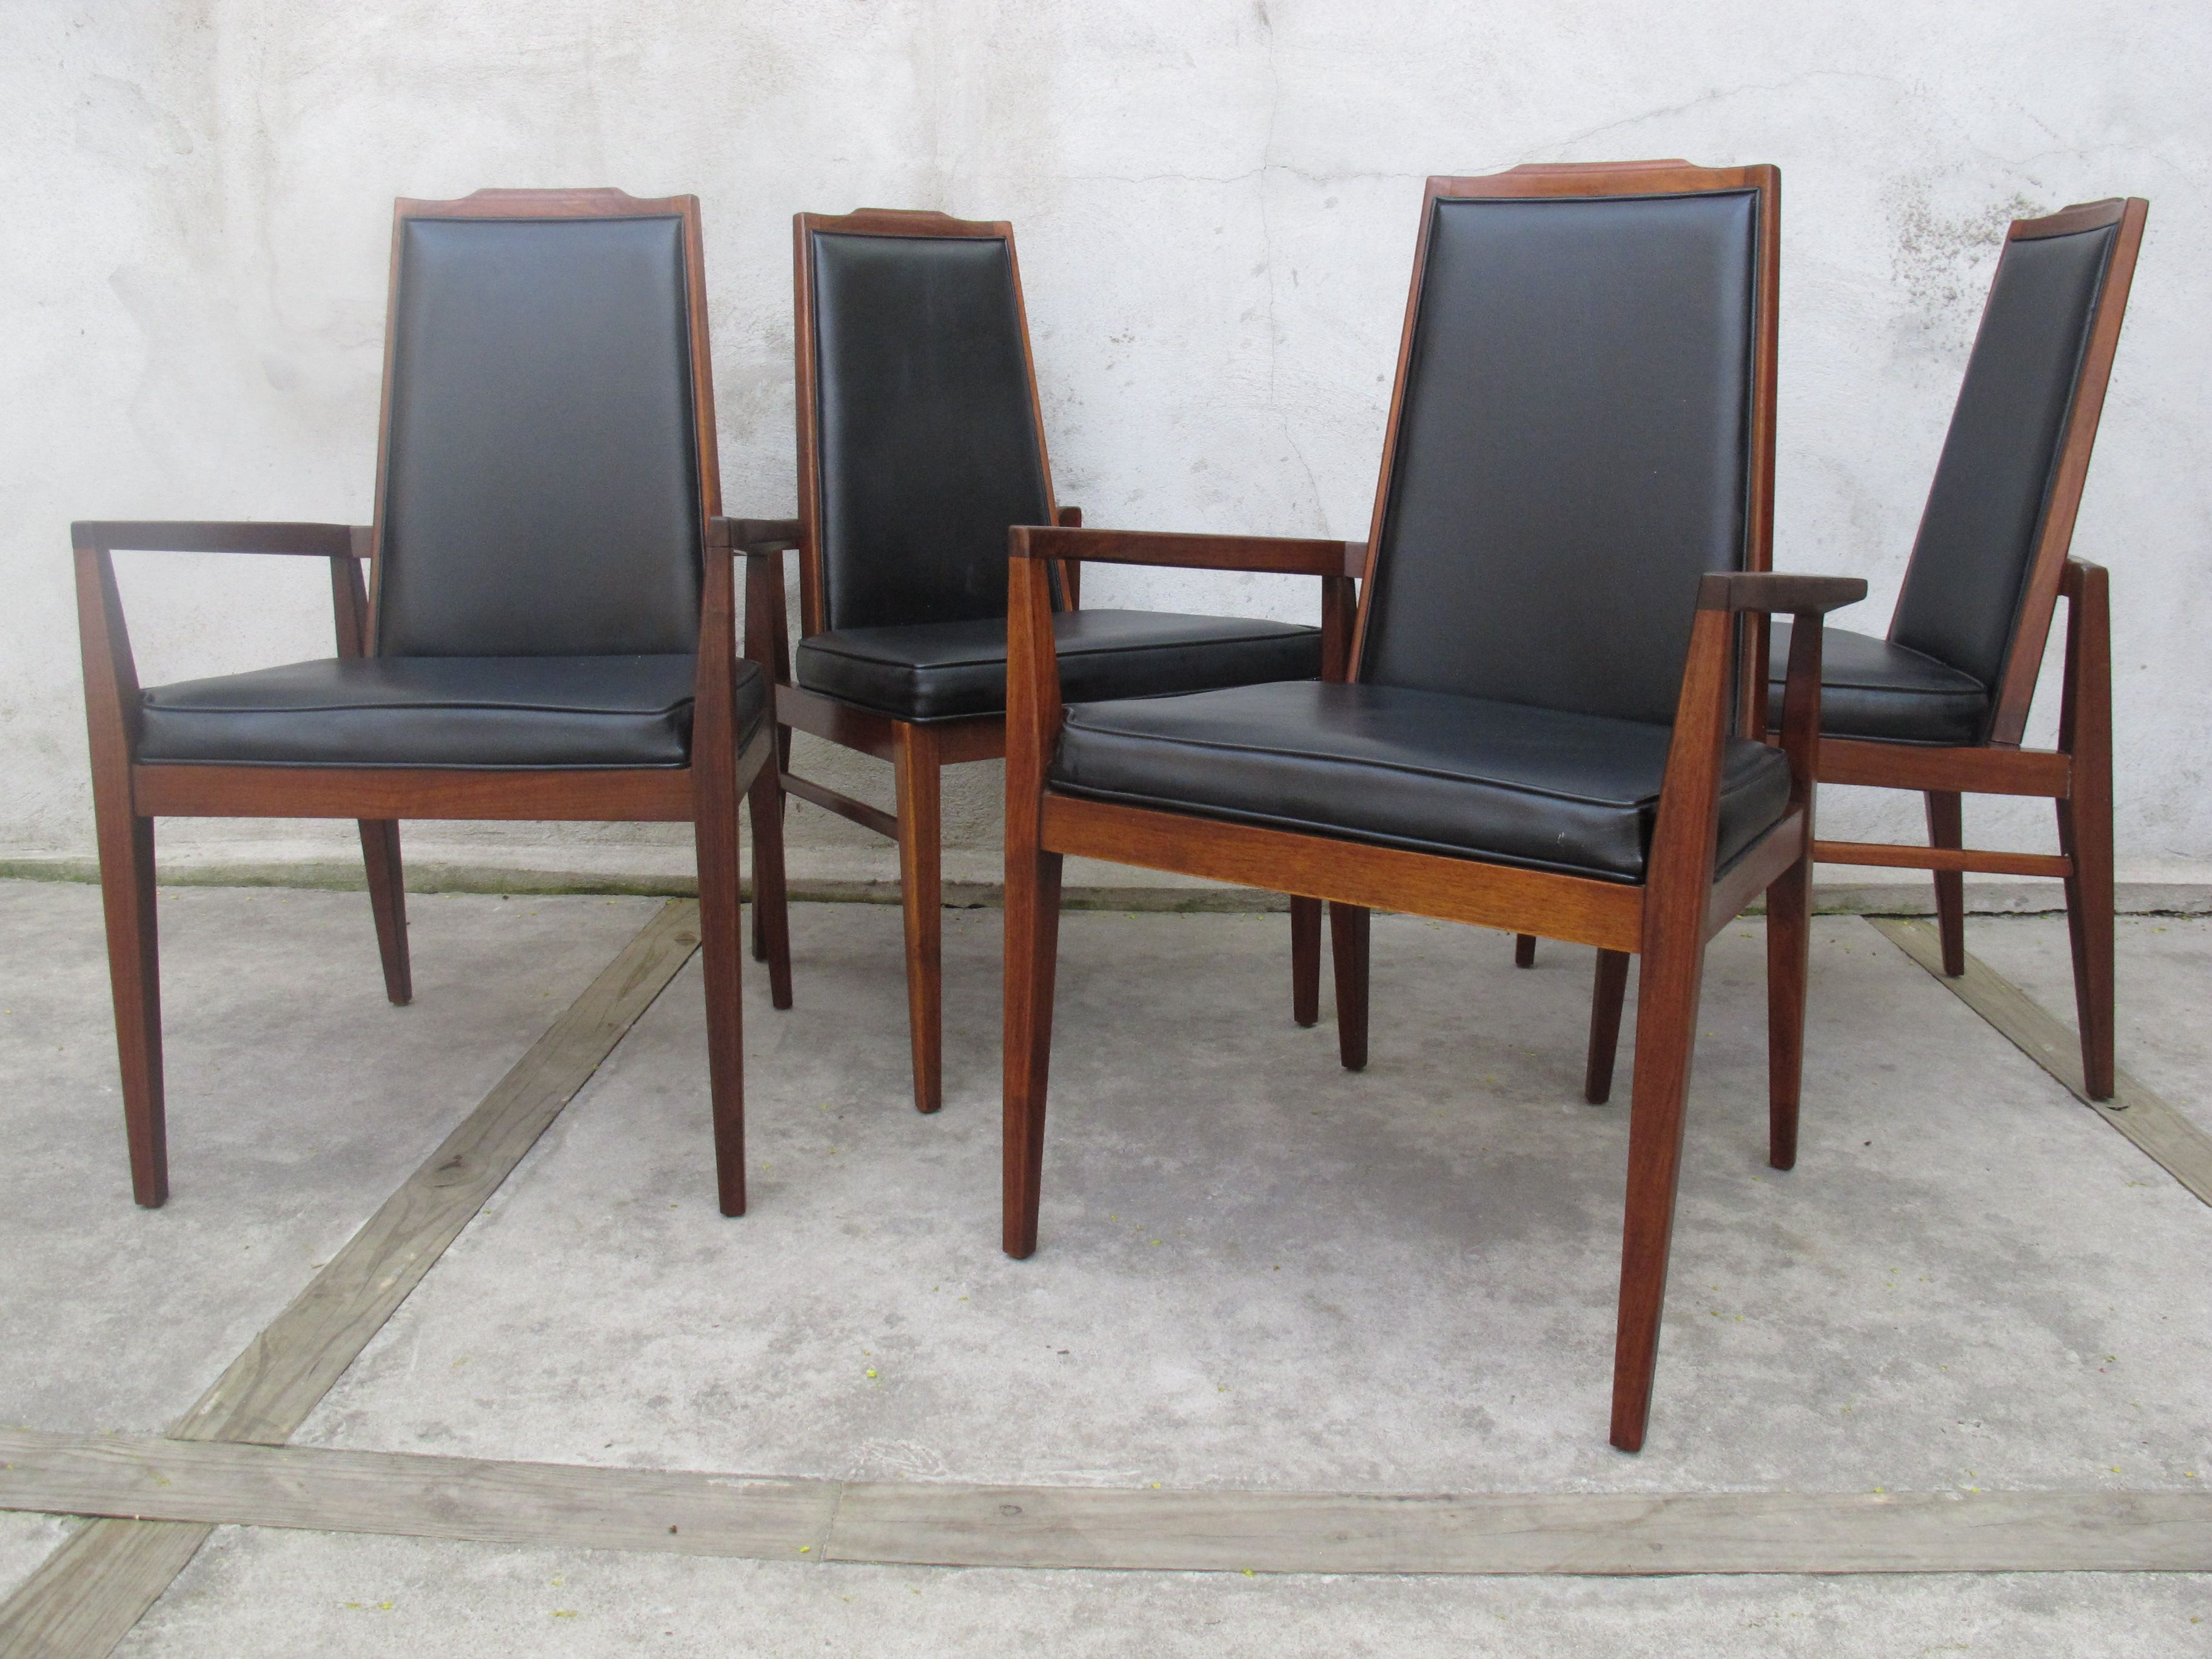 MID CENTURY WALNUT DINING CHAIRS BY FOSTER MCDAVID